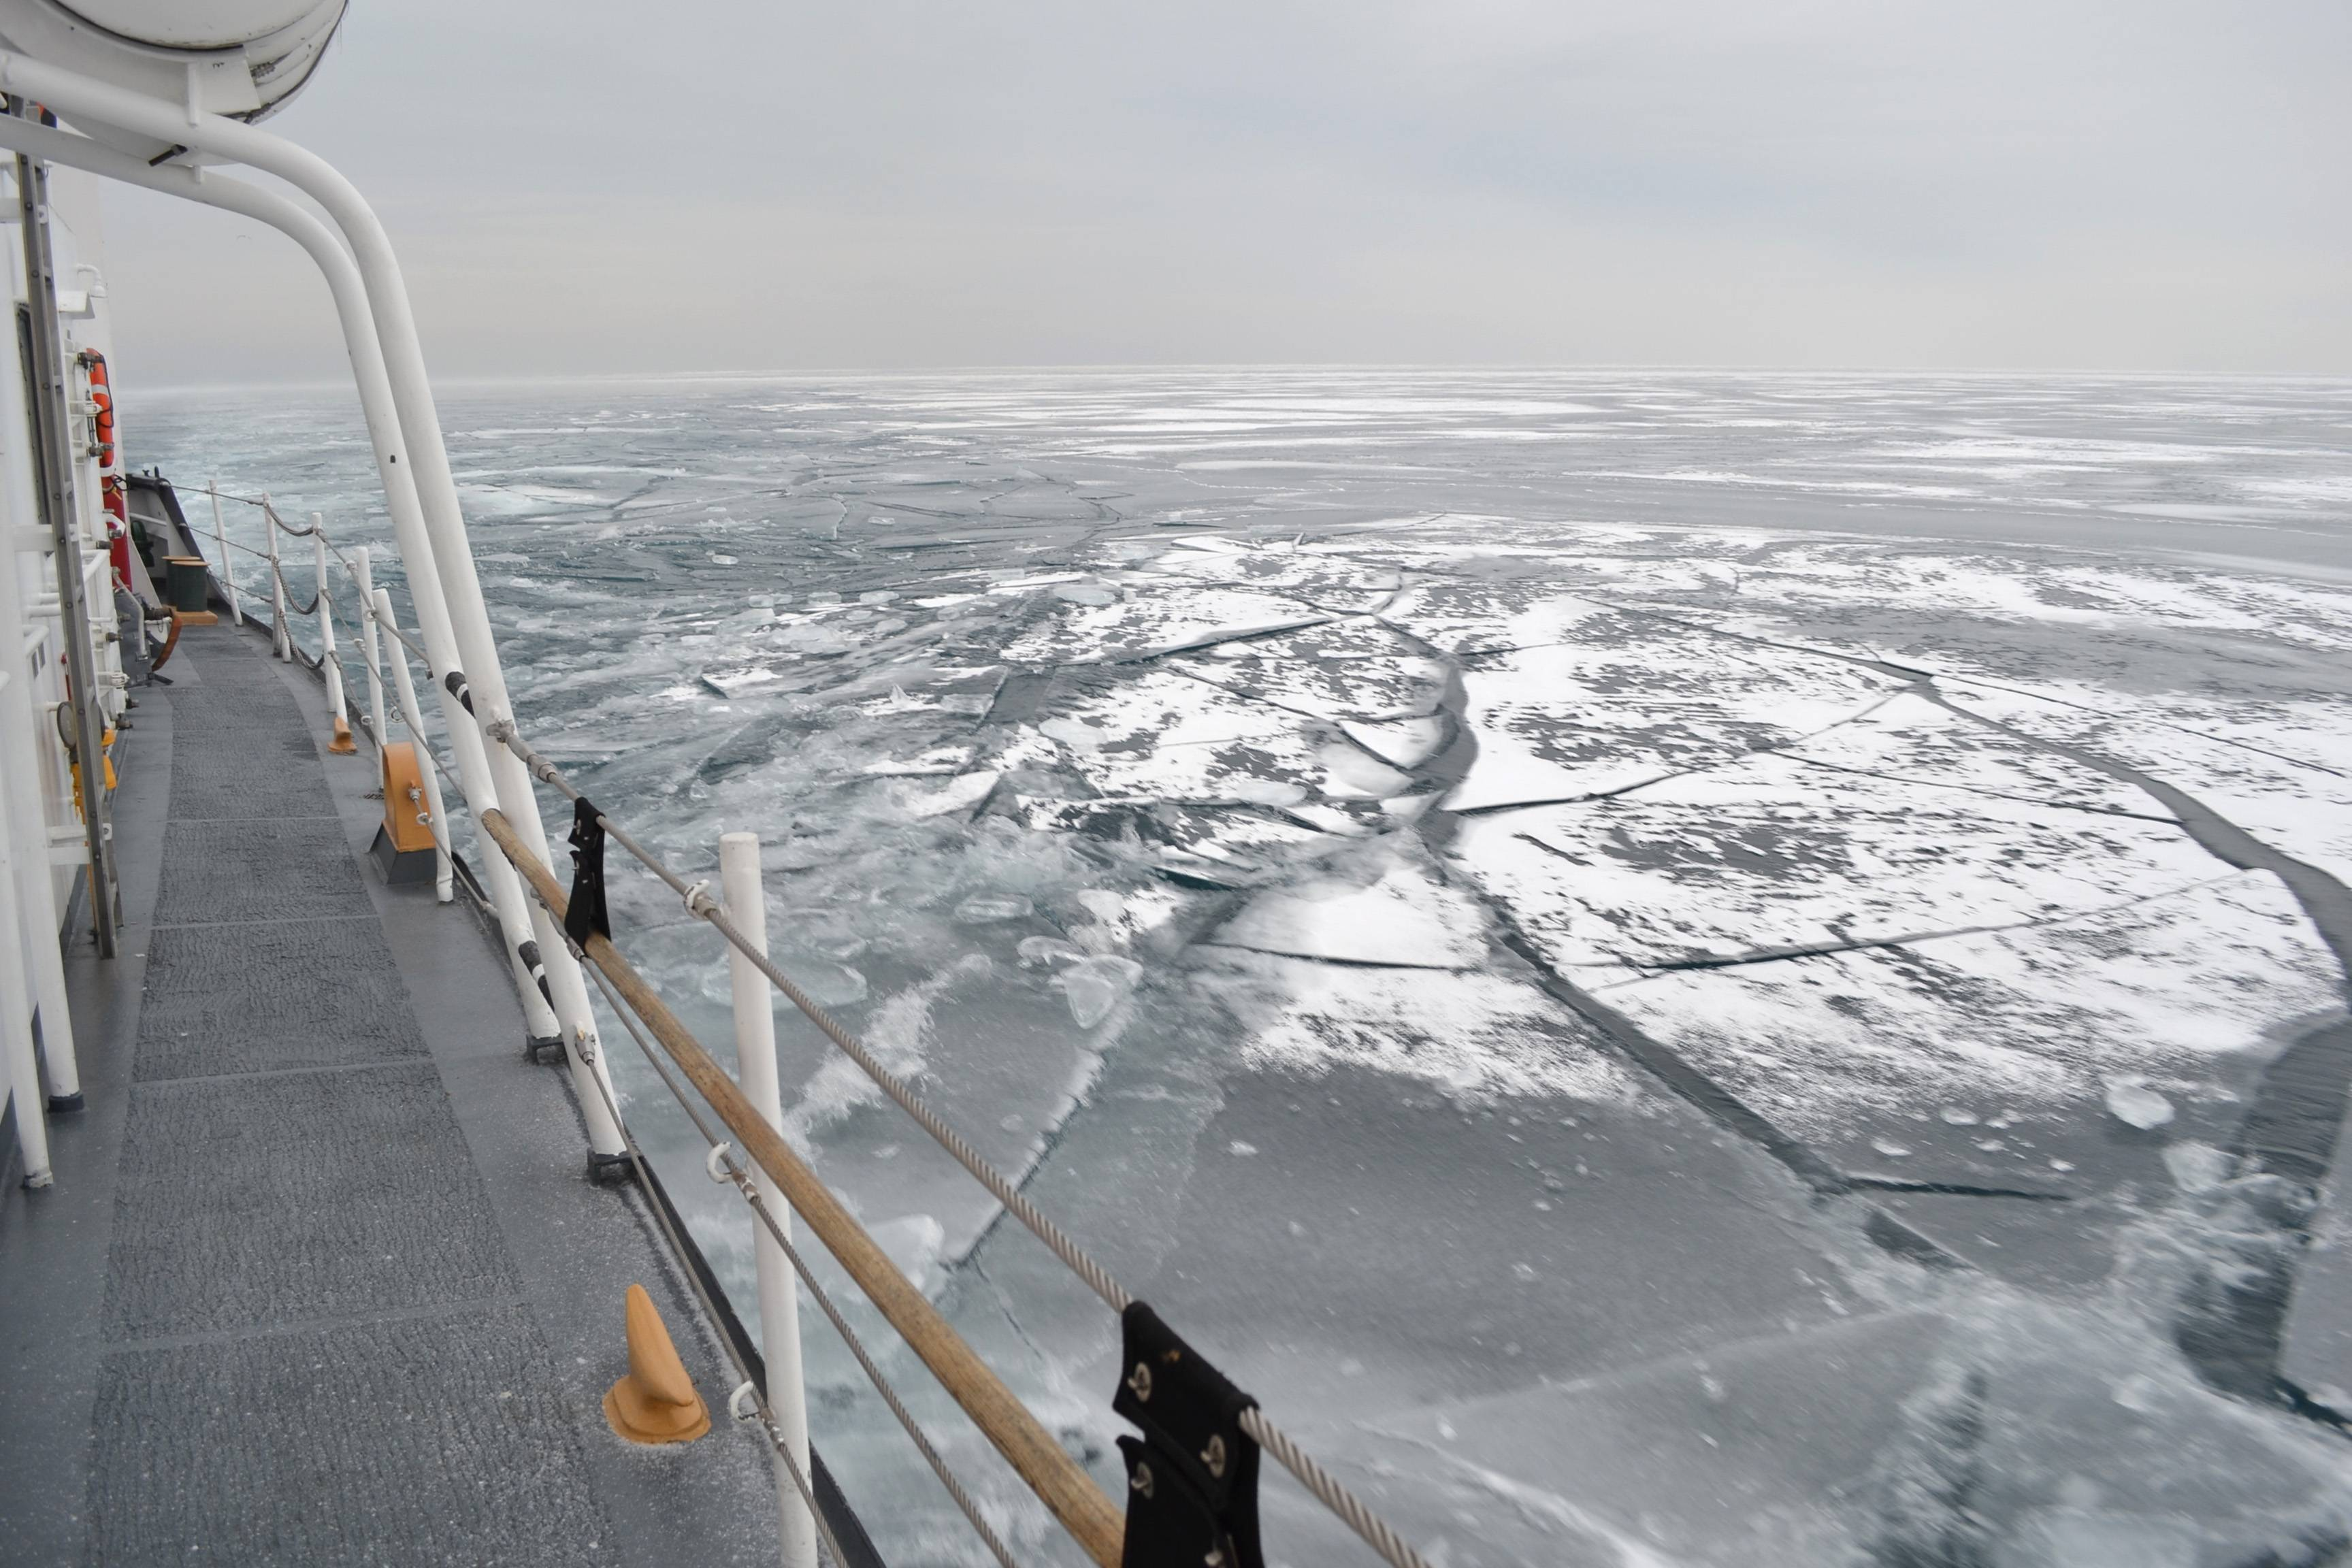 The Biscayne Bay, a 140-foot ice-breaking tug, helped break ice on the southern part of Lake Michigan this week to assist commerce.